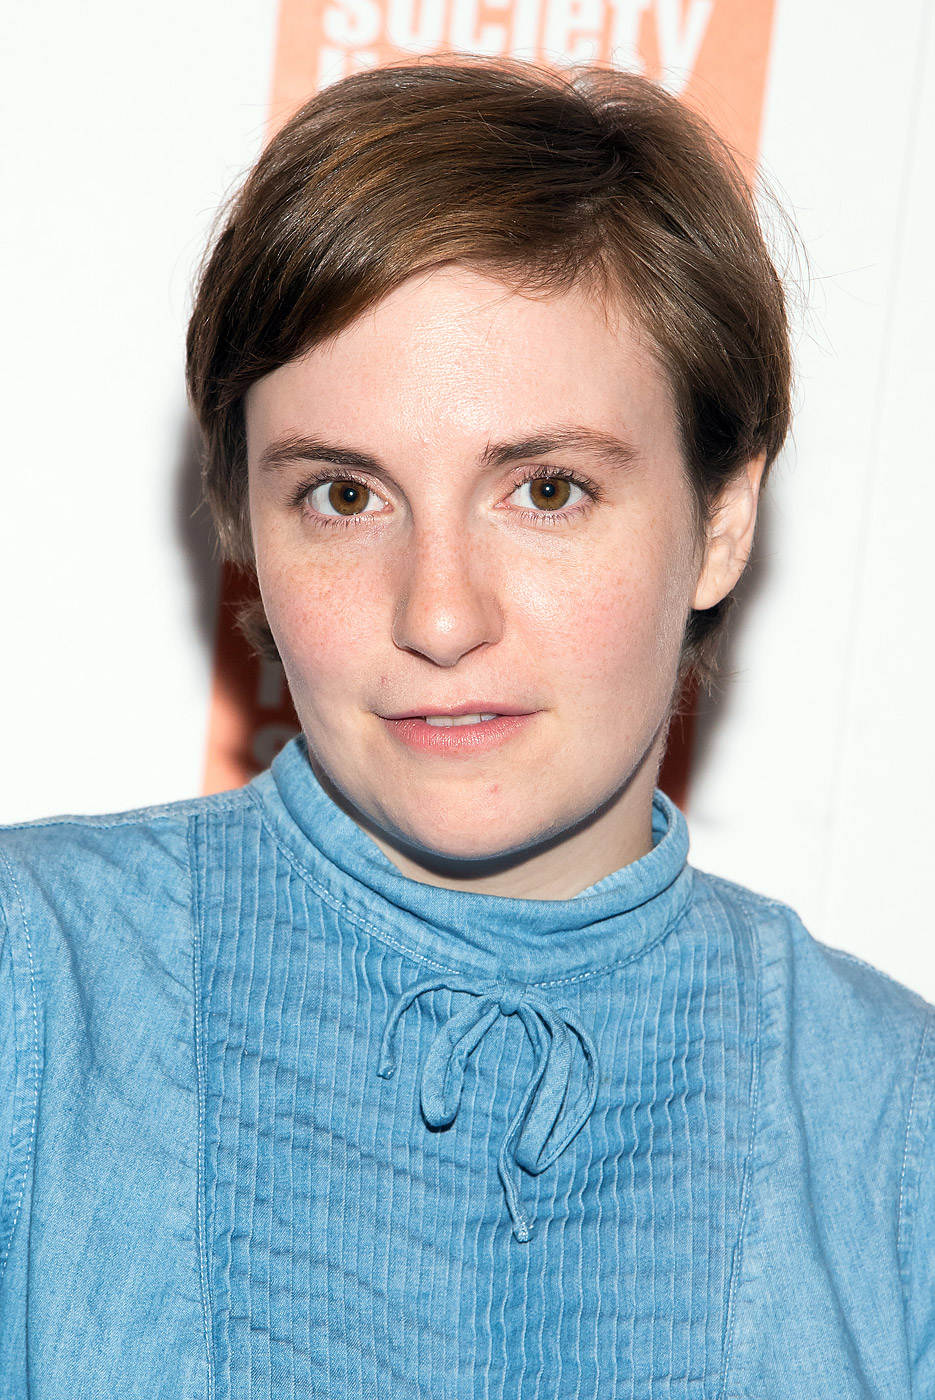 Lena Dunham attends the 2015 Film Society of Lincoln Center Summer Talks with Judd Apatow and Lena Dunham at Walter Reade Theater on July 13, 2015 in New York City.